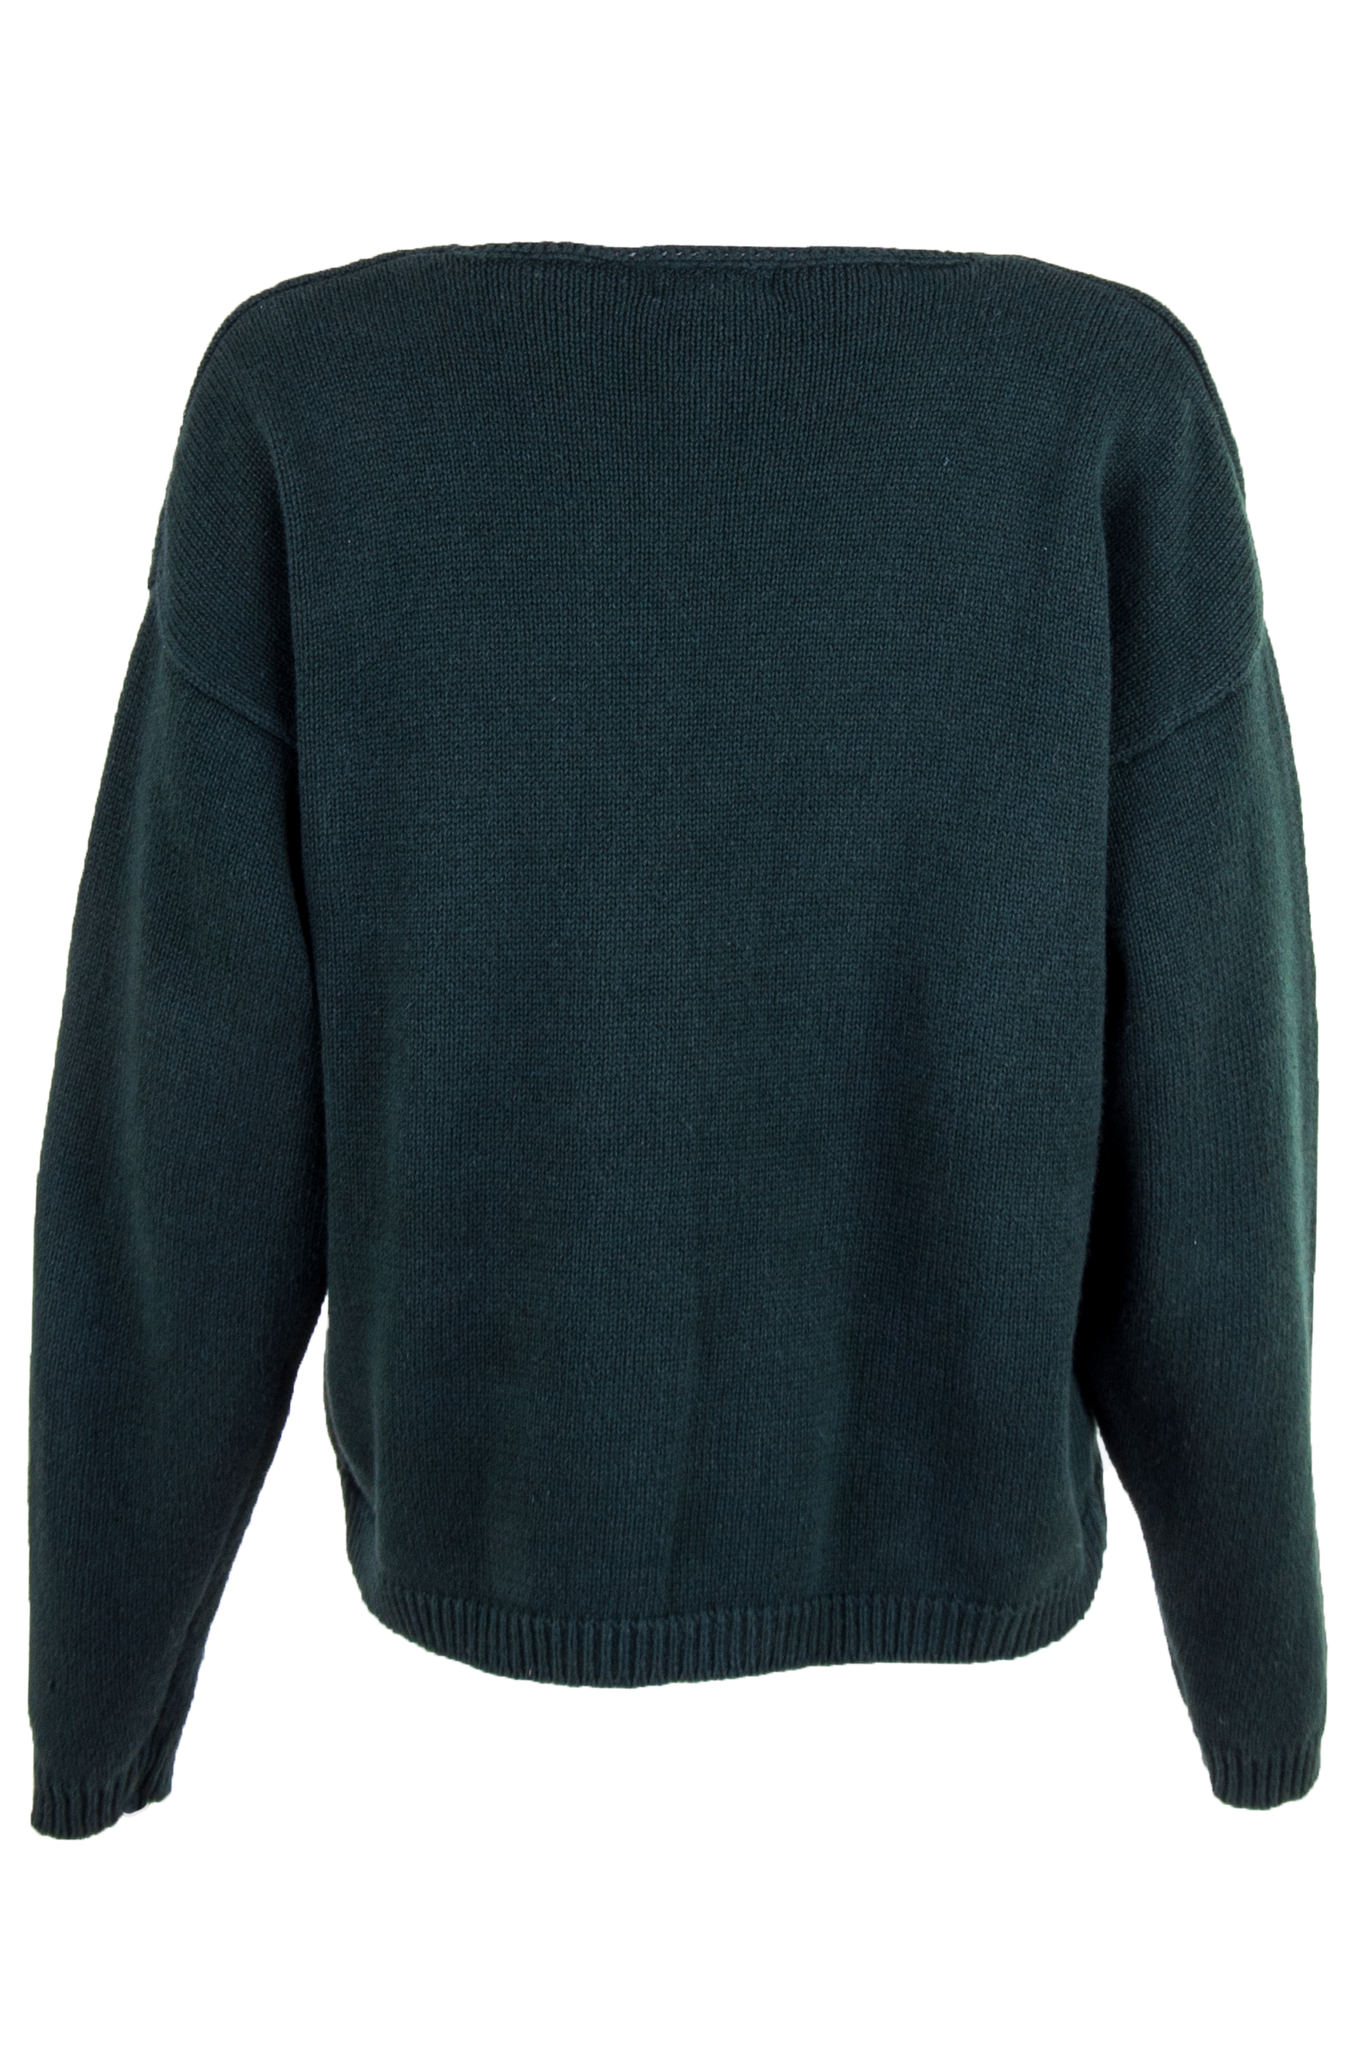 vintage dark green sweater